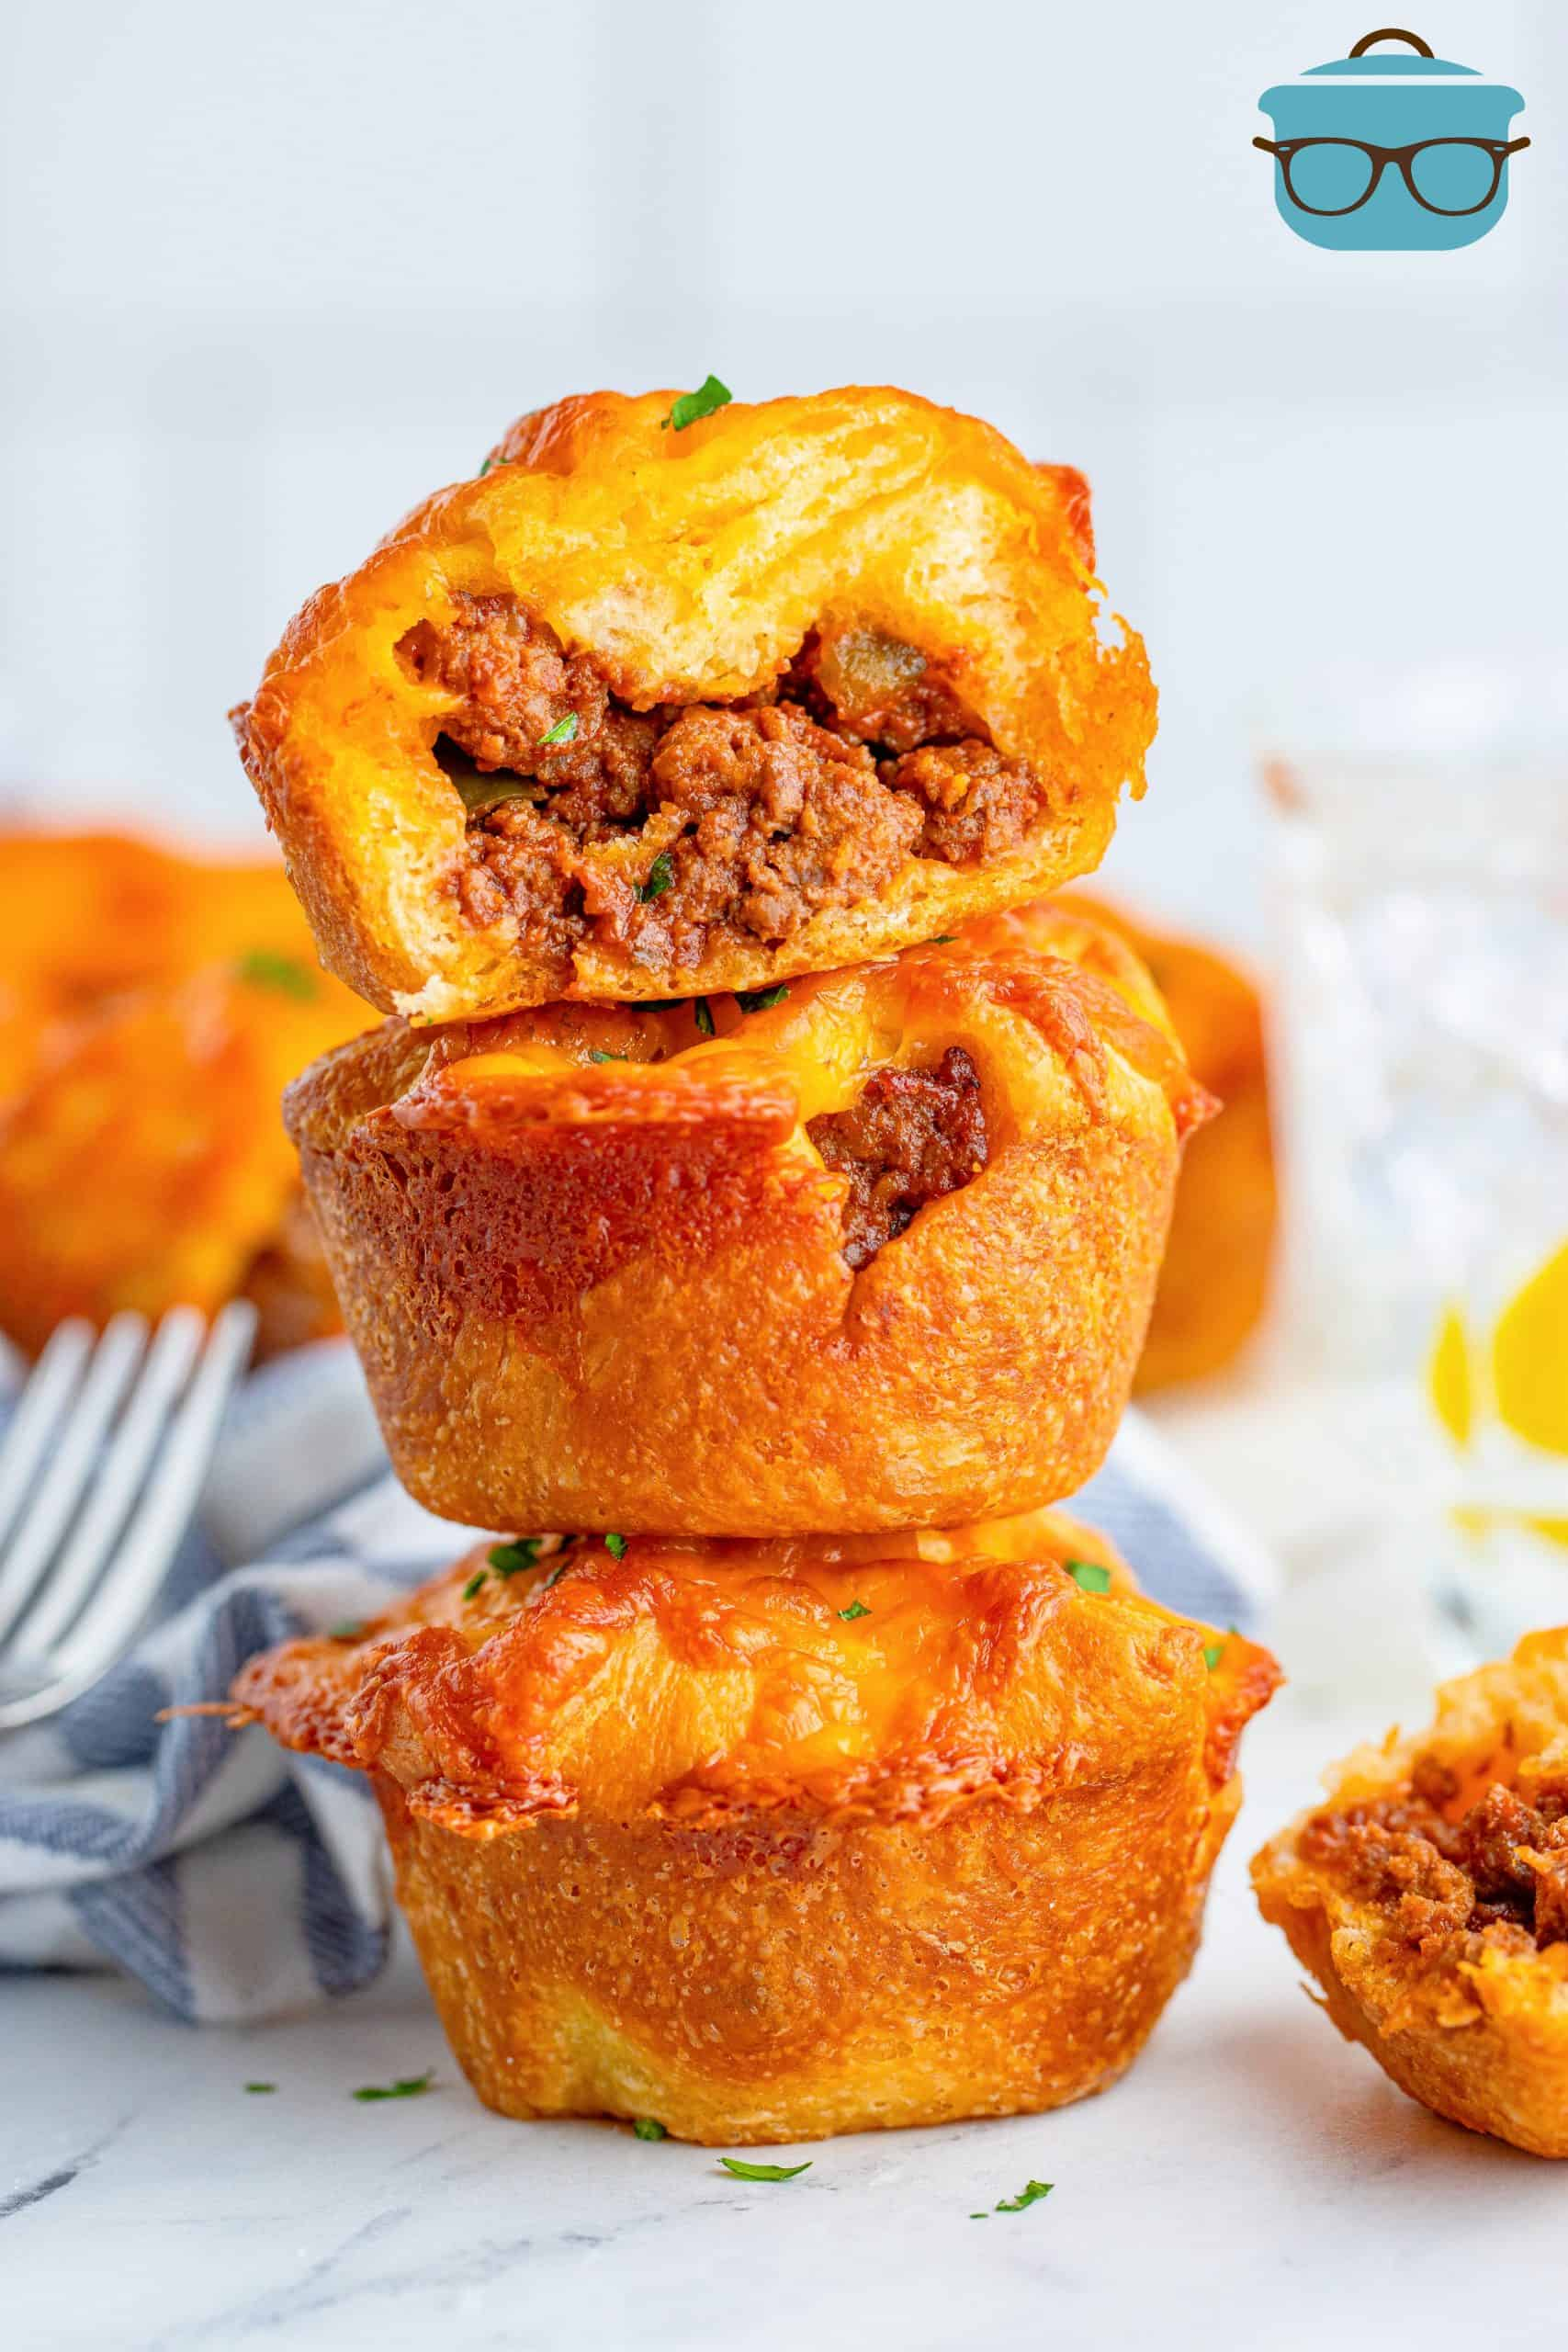 Three stacked Sloppy Joe Cups with top one cut open showing inside filling.